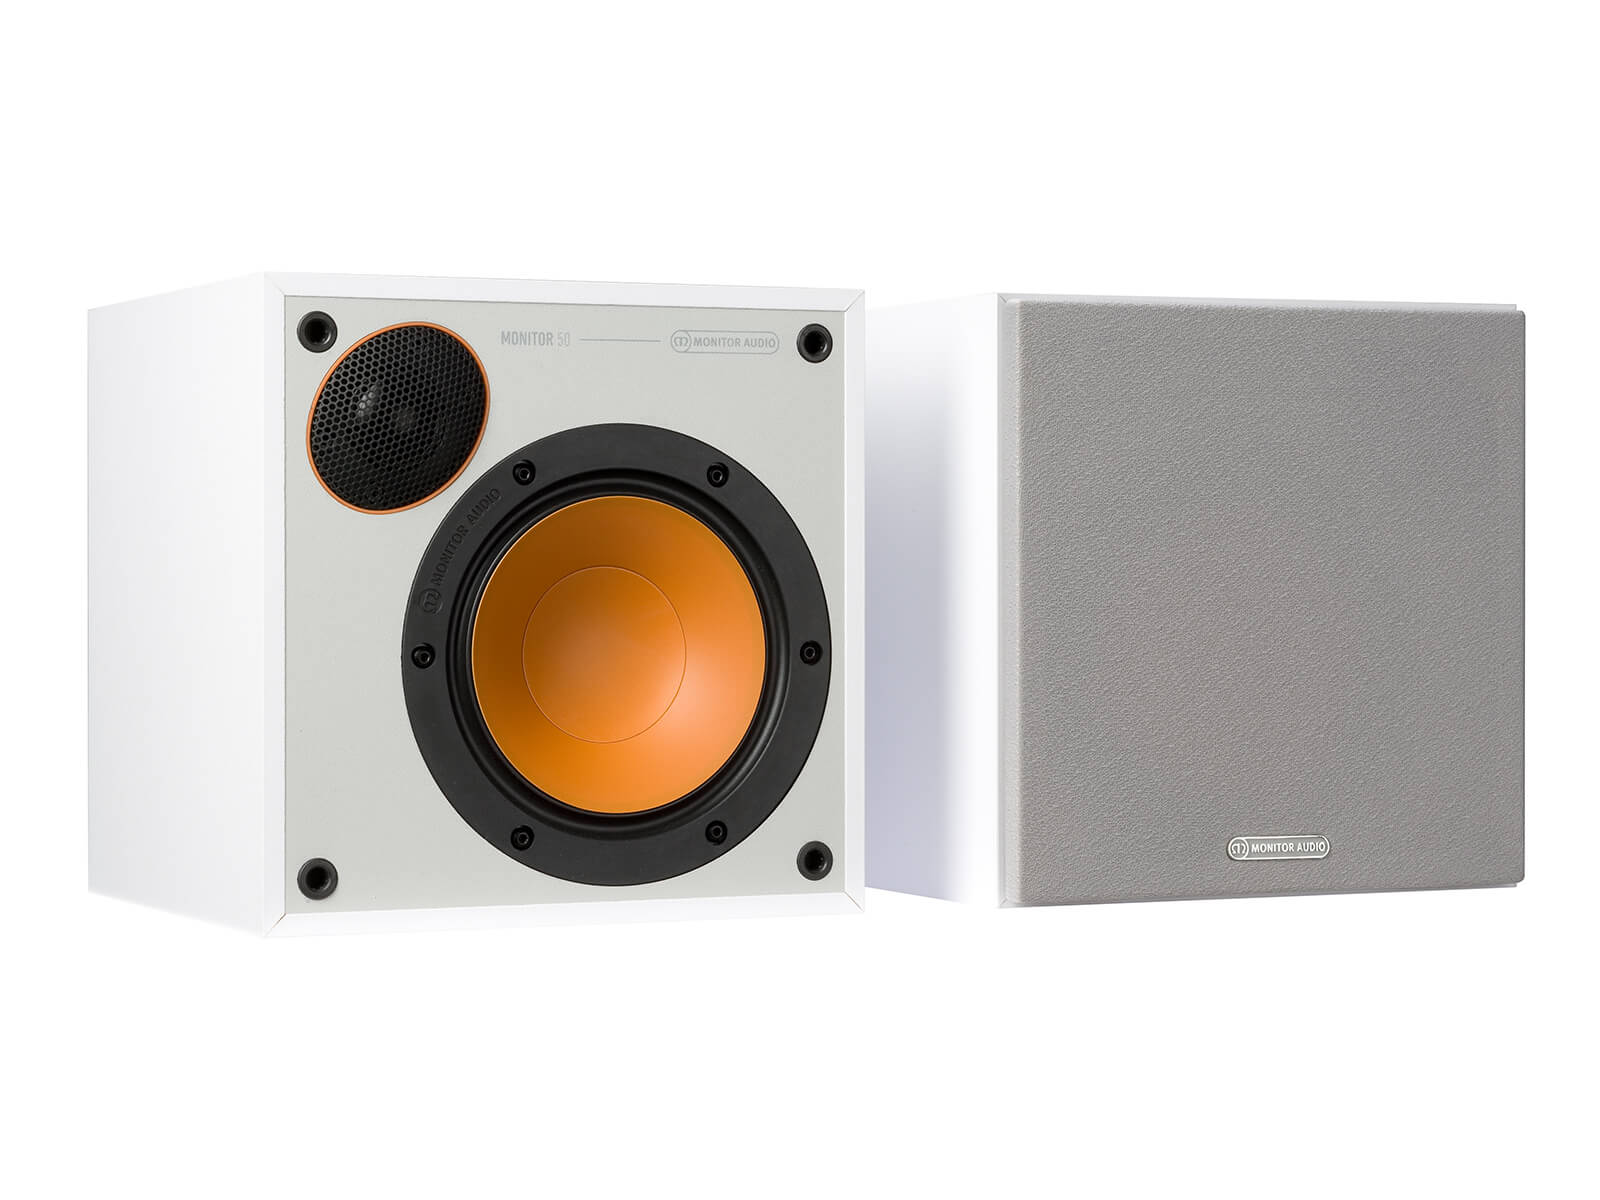 Monitor 50, bookshelf speakers, with and without grille in a white finish.